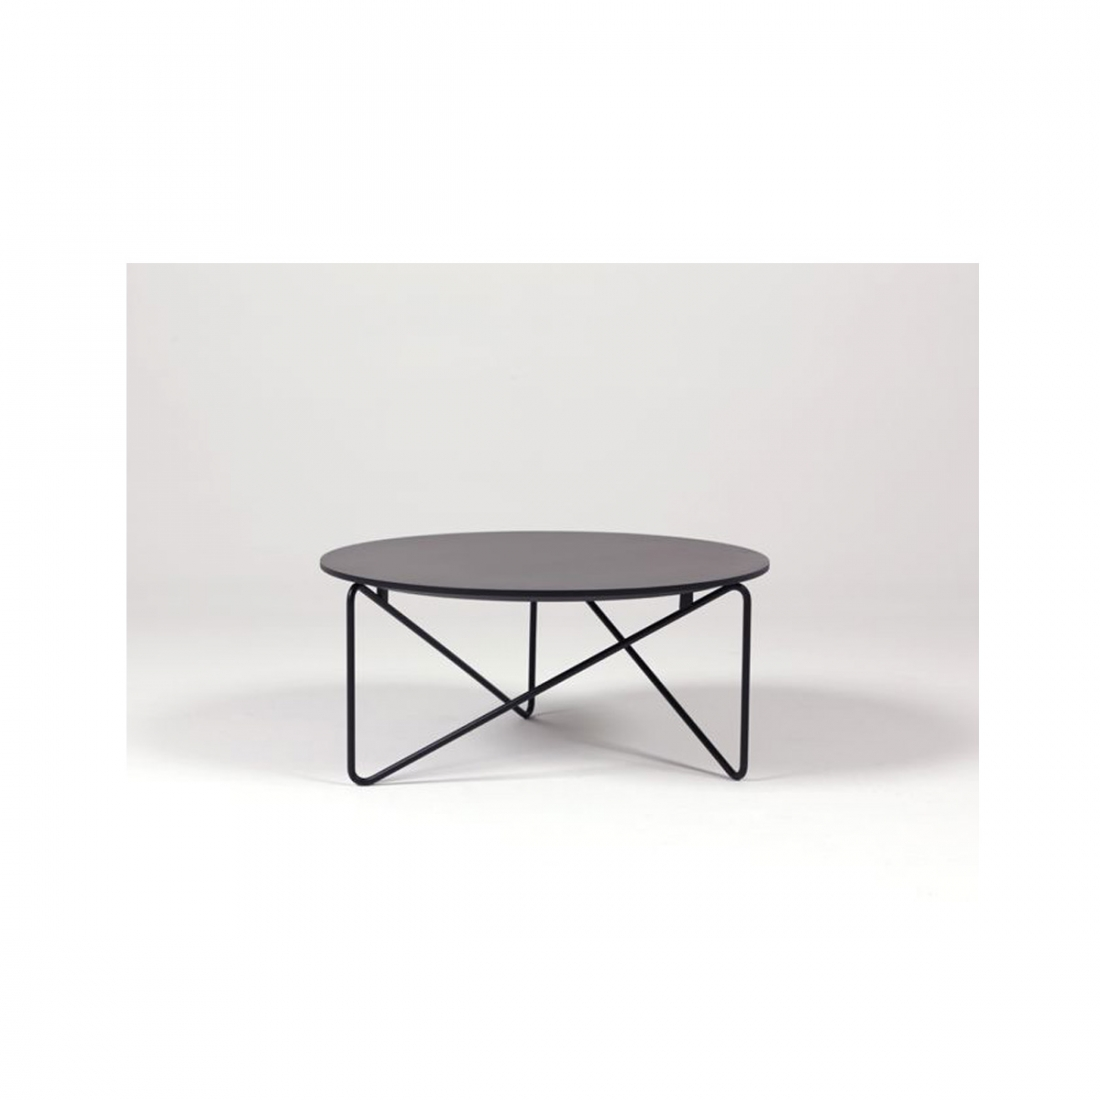 Table basse ronde polygon prostoria zendart design - Tables basses rondes ...